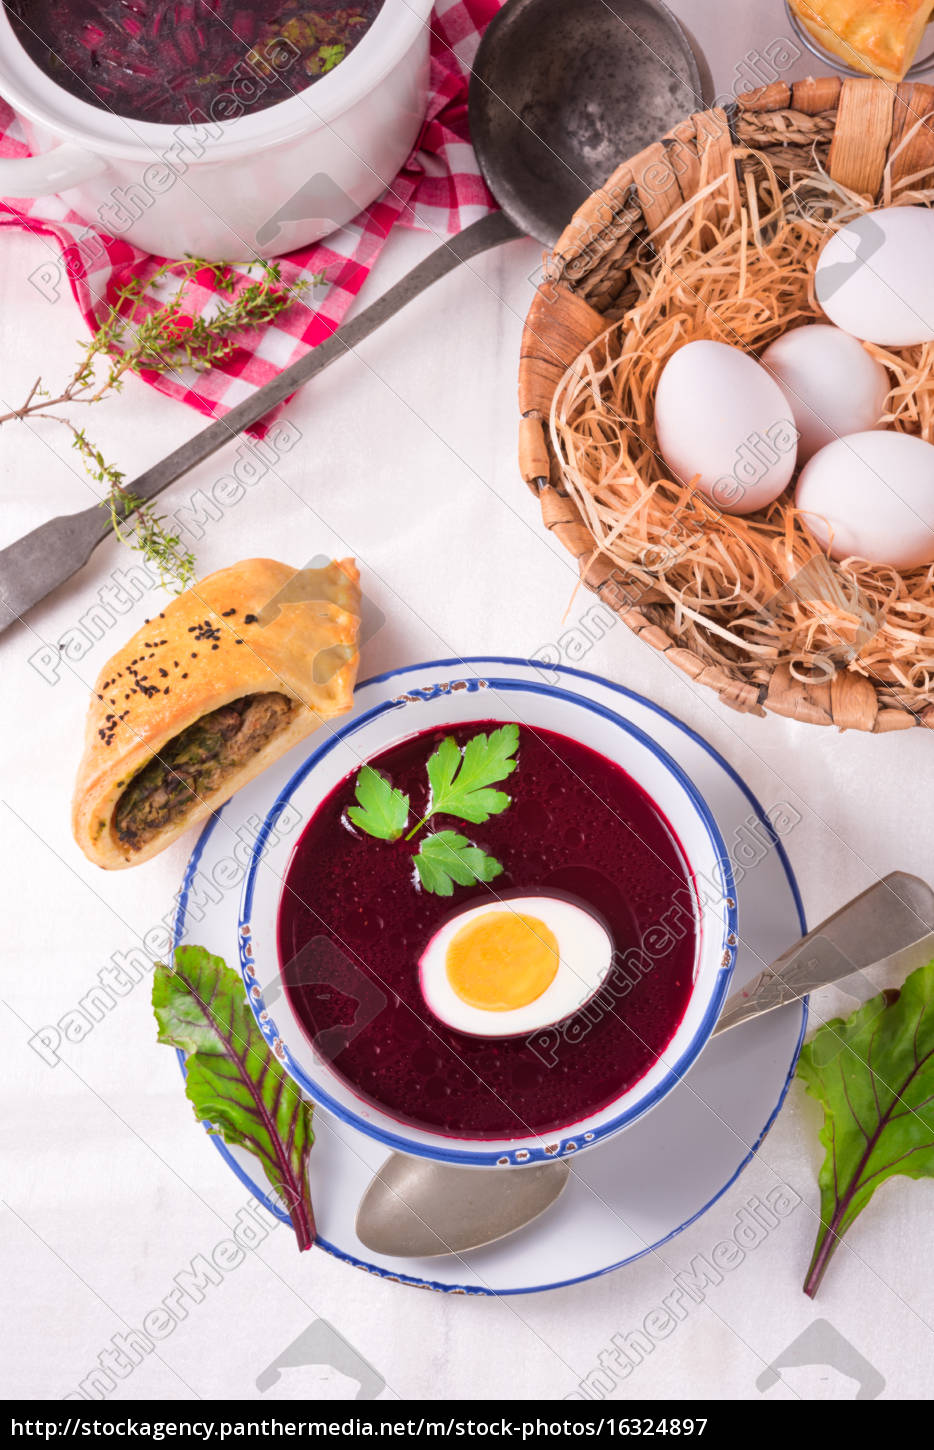 beet, green, soup, with, egg - 16324897